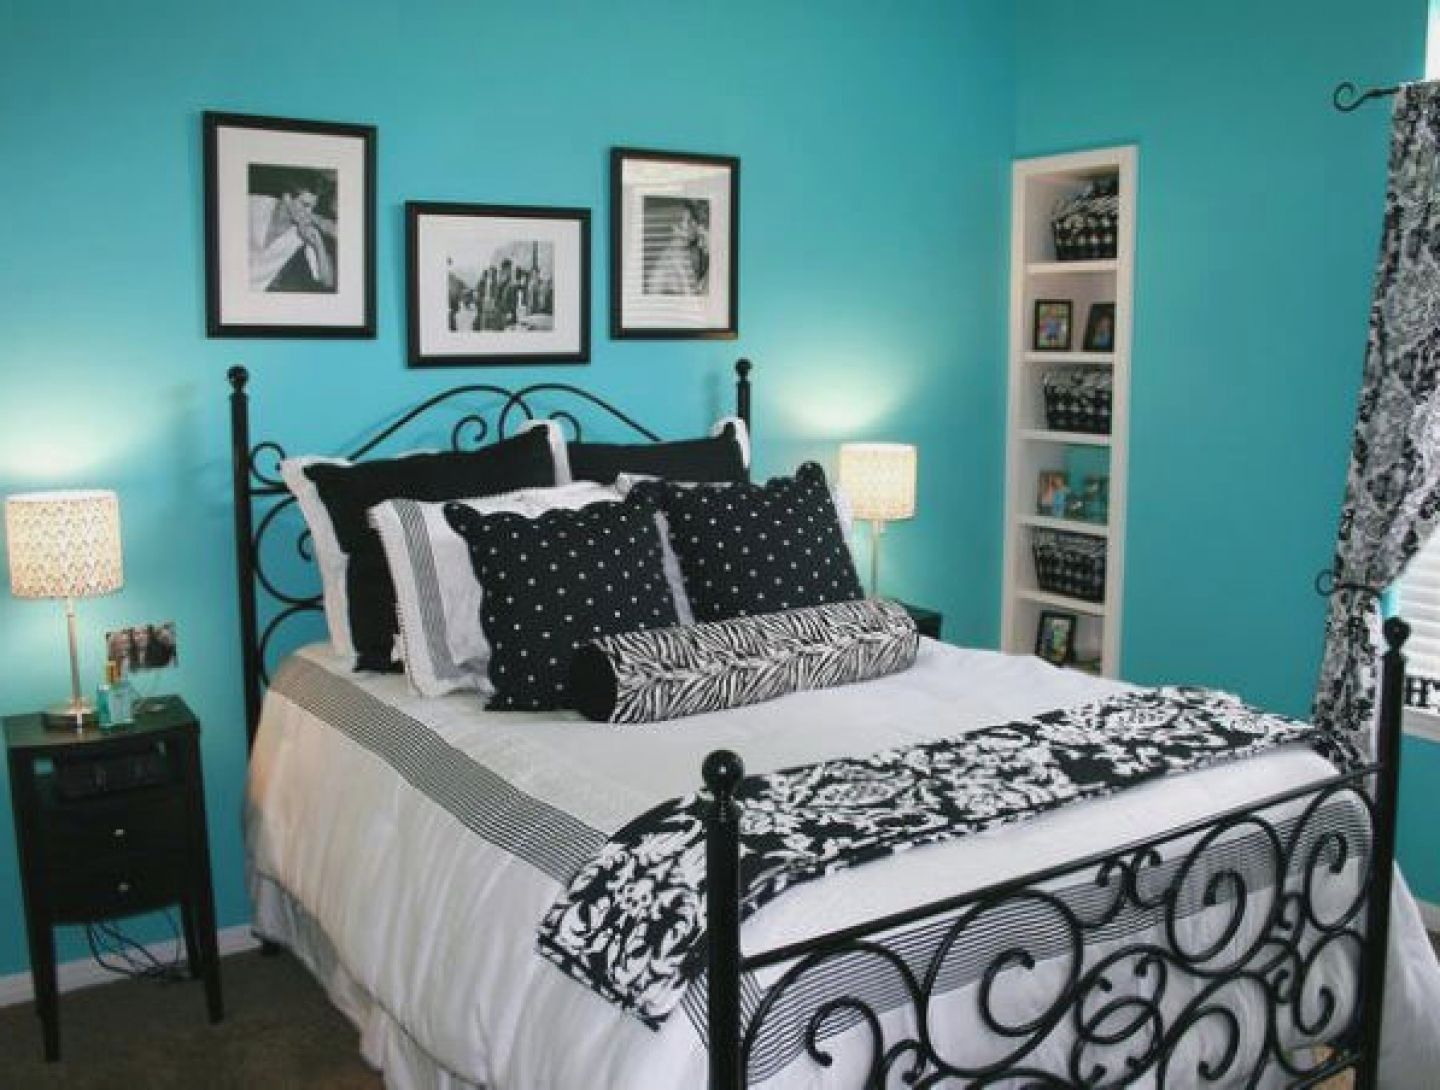 Teal And Grey Bedroom Decor Google Search Turquoise Room Tiffany Blue Bedroom Woman Bedroom